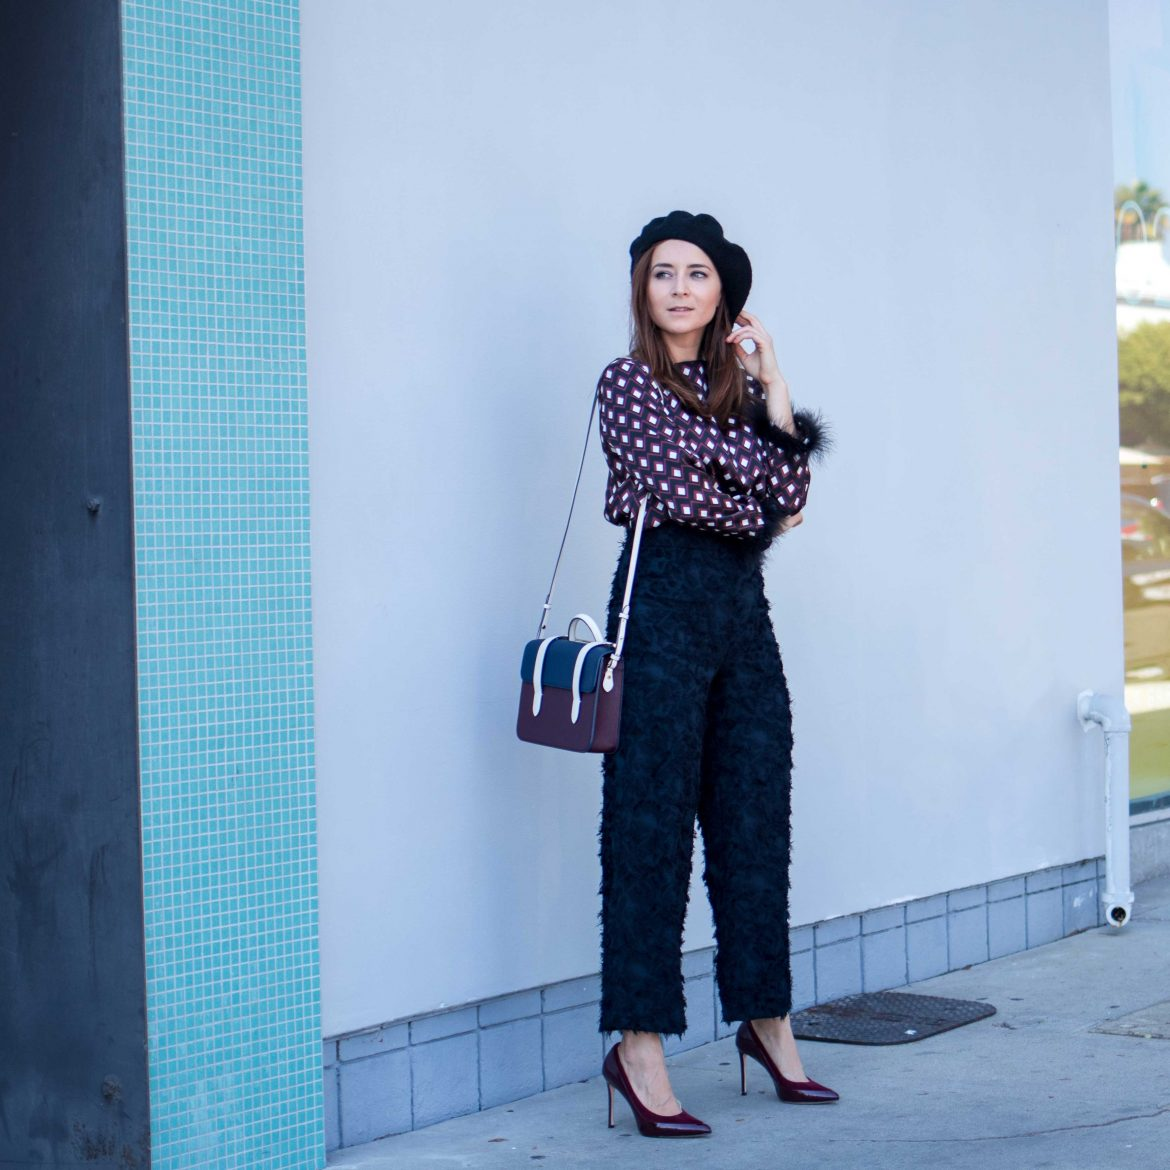 Fall Hat 2017 trend report: Best of Berets and How to style them - More on Houseofcomil.com